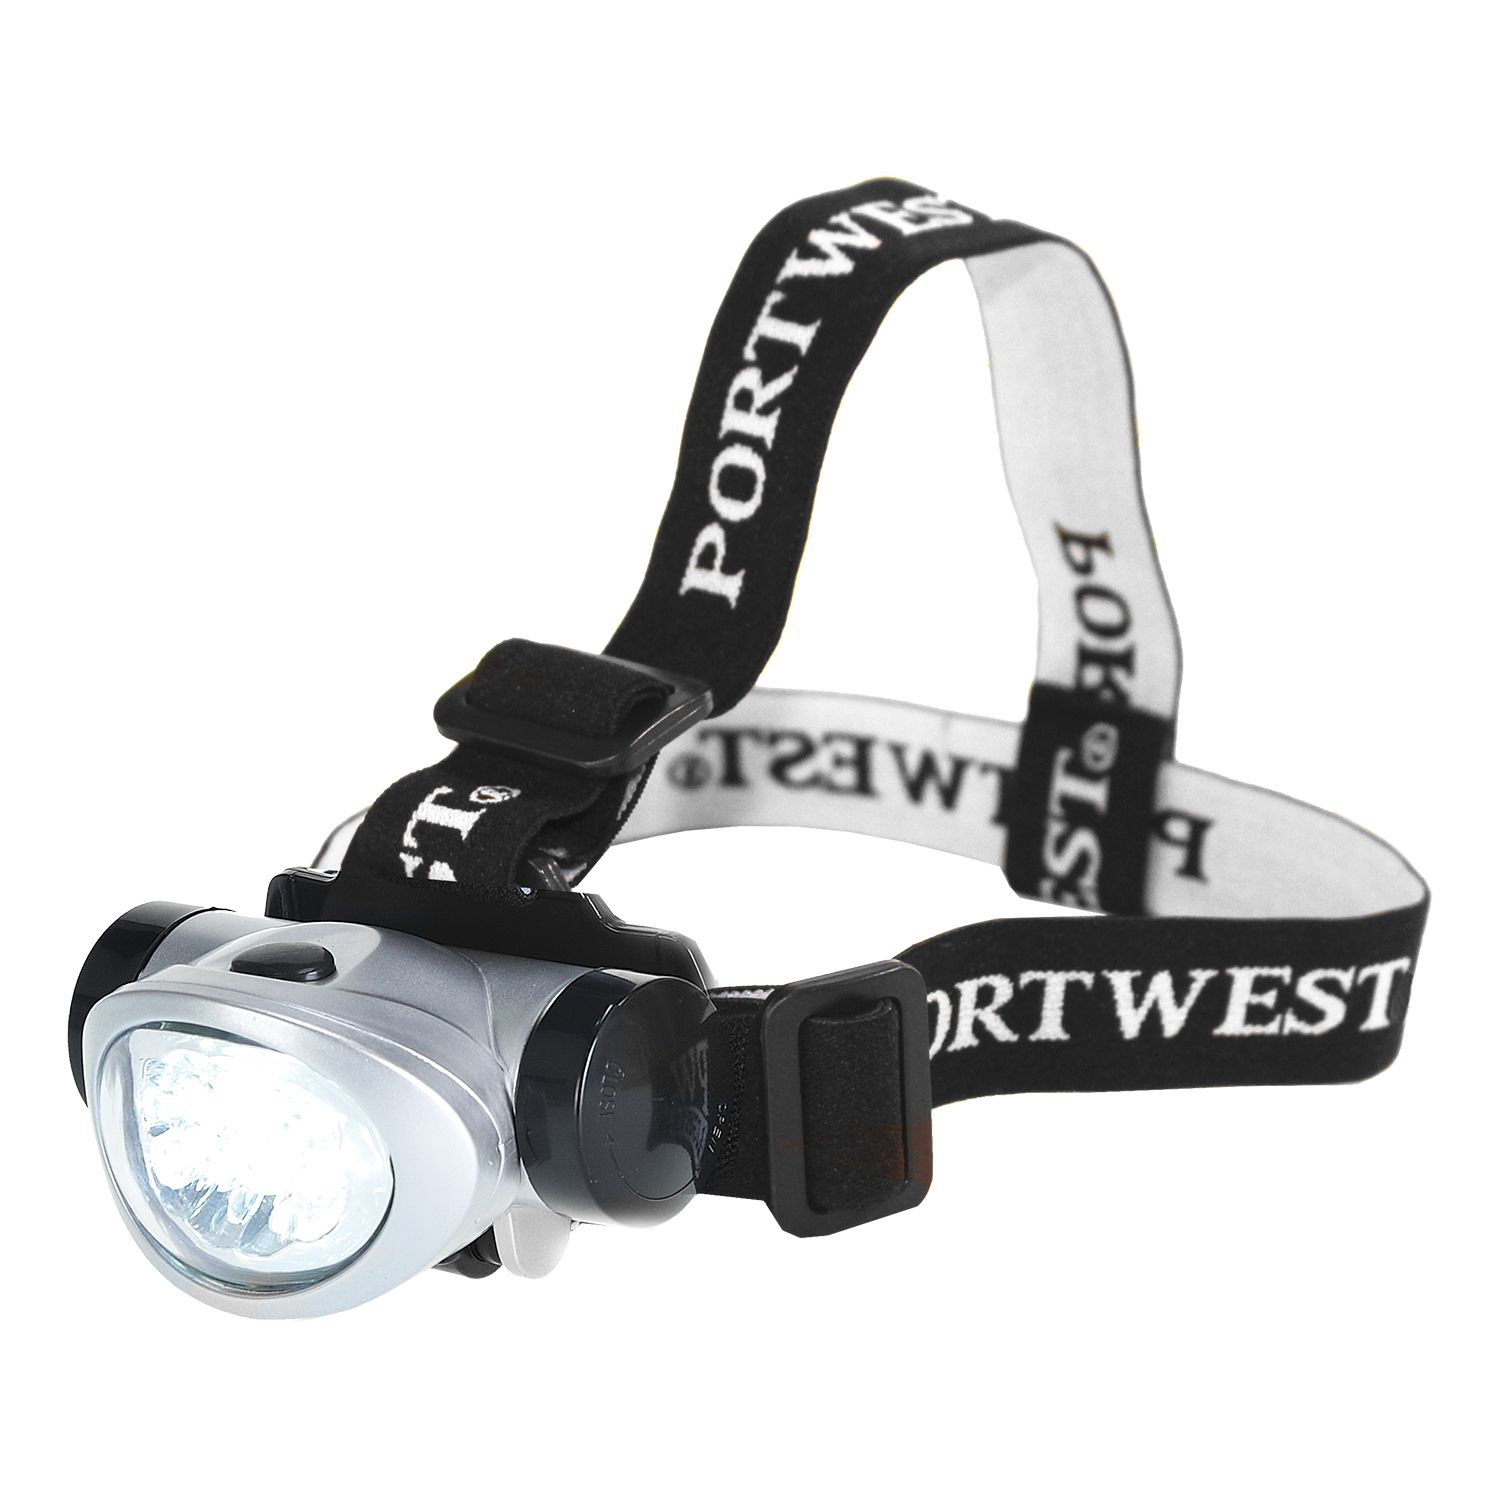 portwest PA50 LED head light